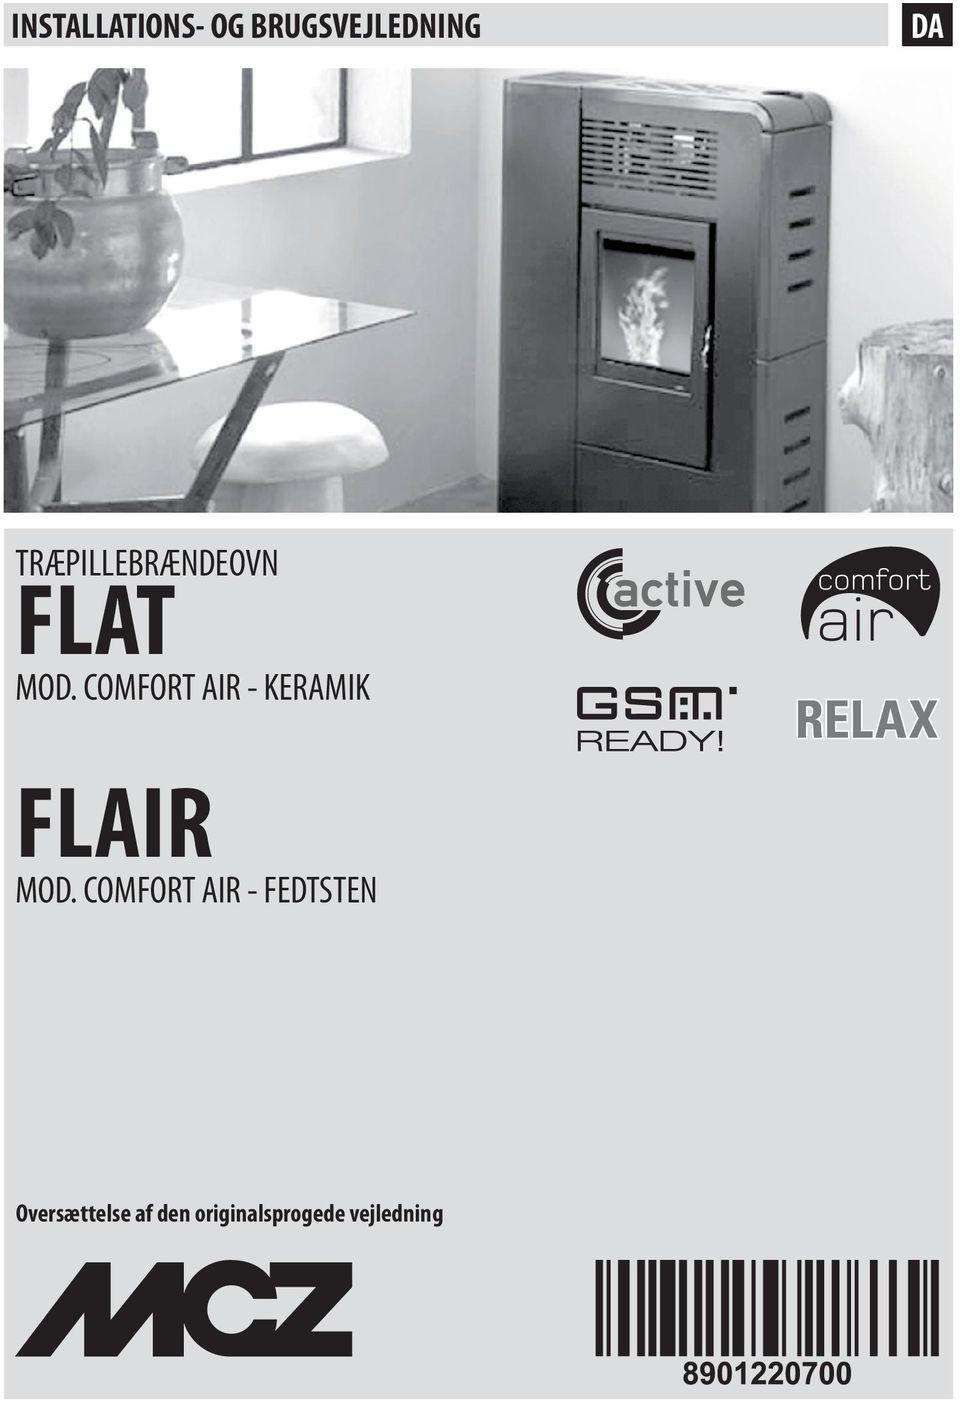 COMFORT AIR - KERAMIK FLAIR MOD.